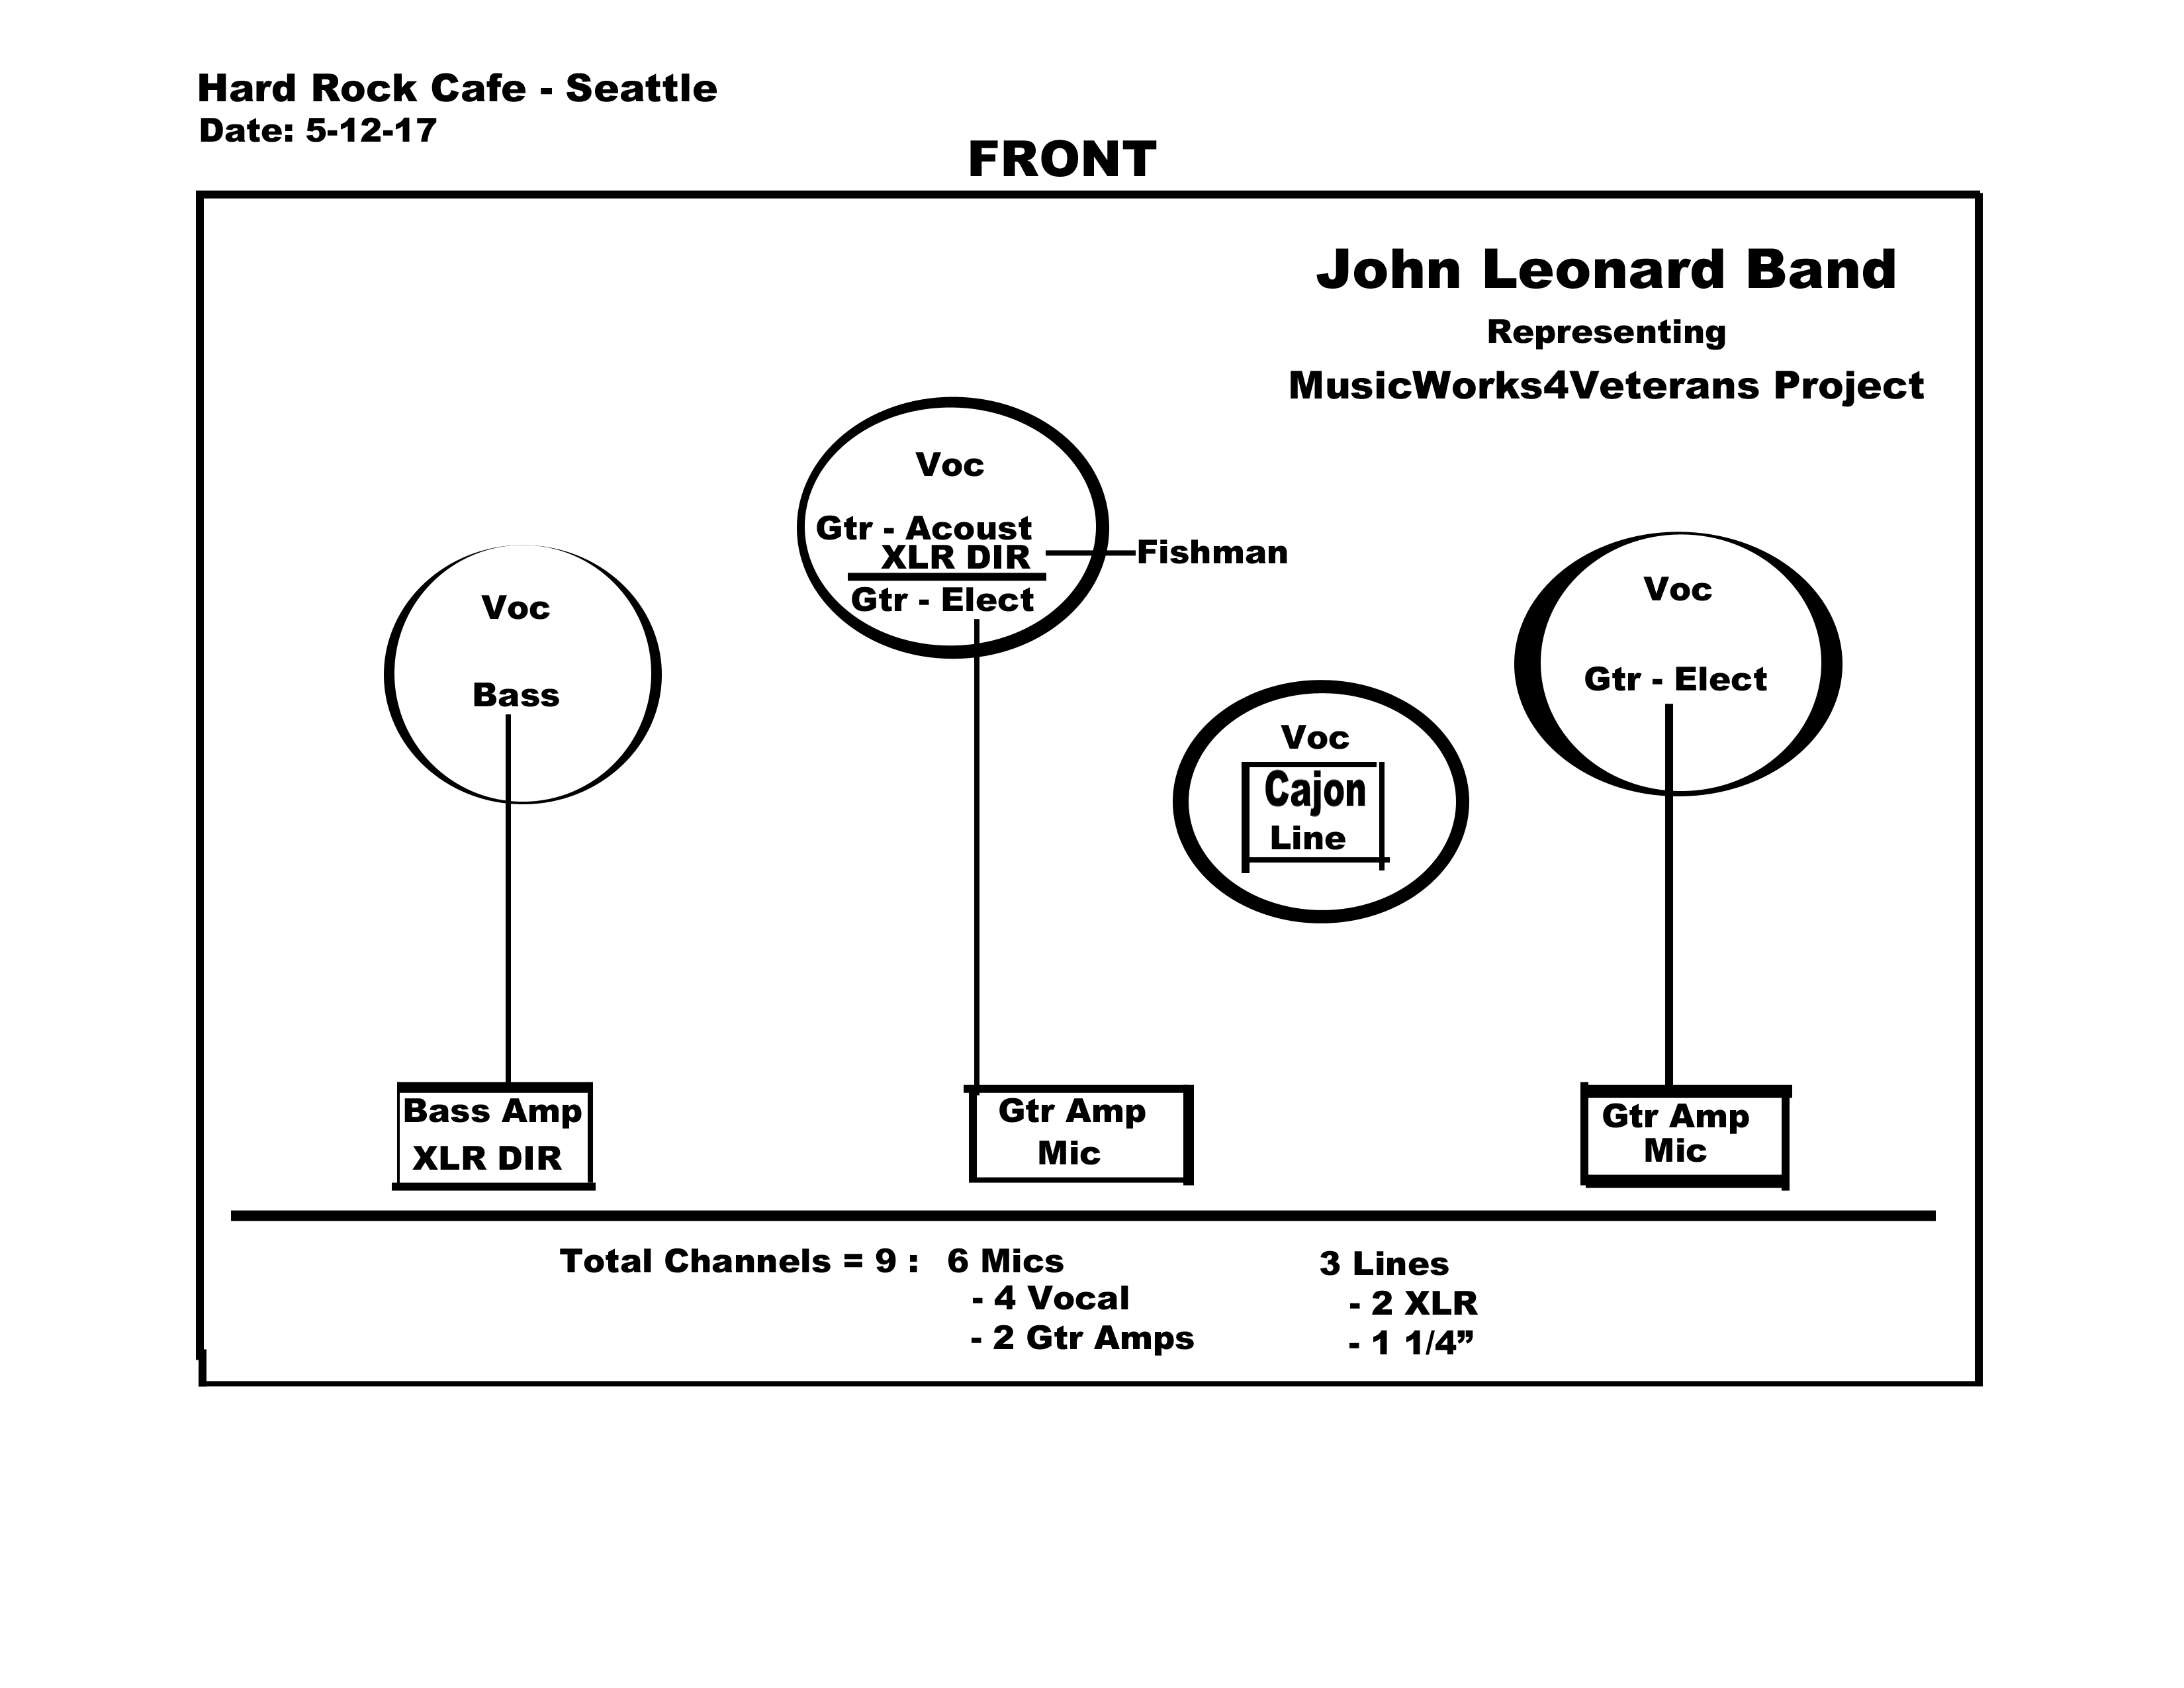 JLB-MW4V Stage Plot-for Website